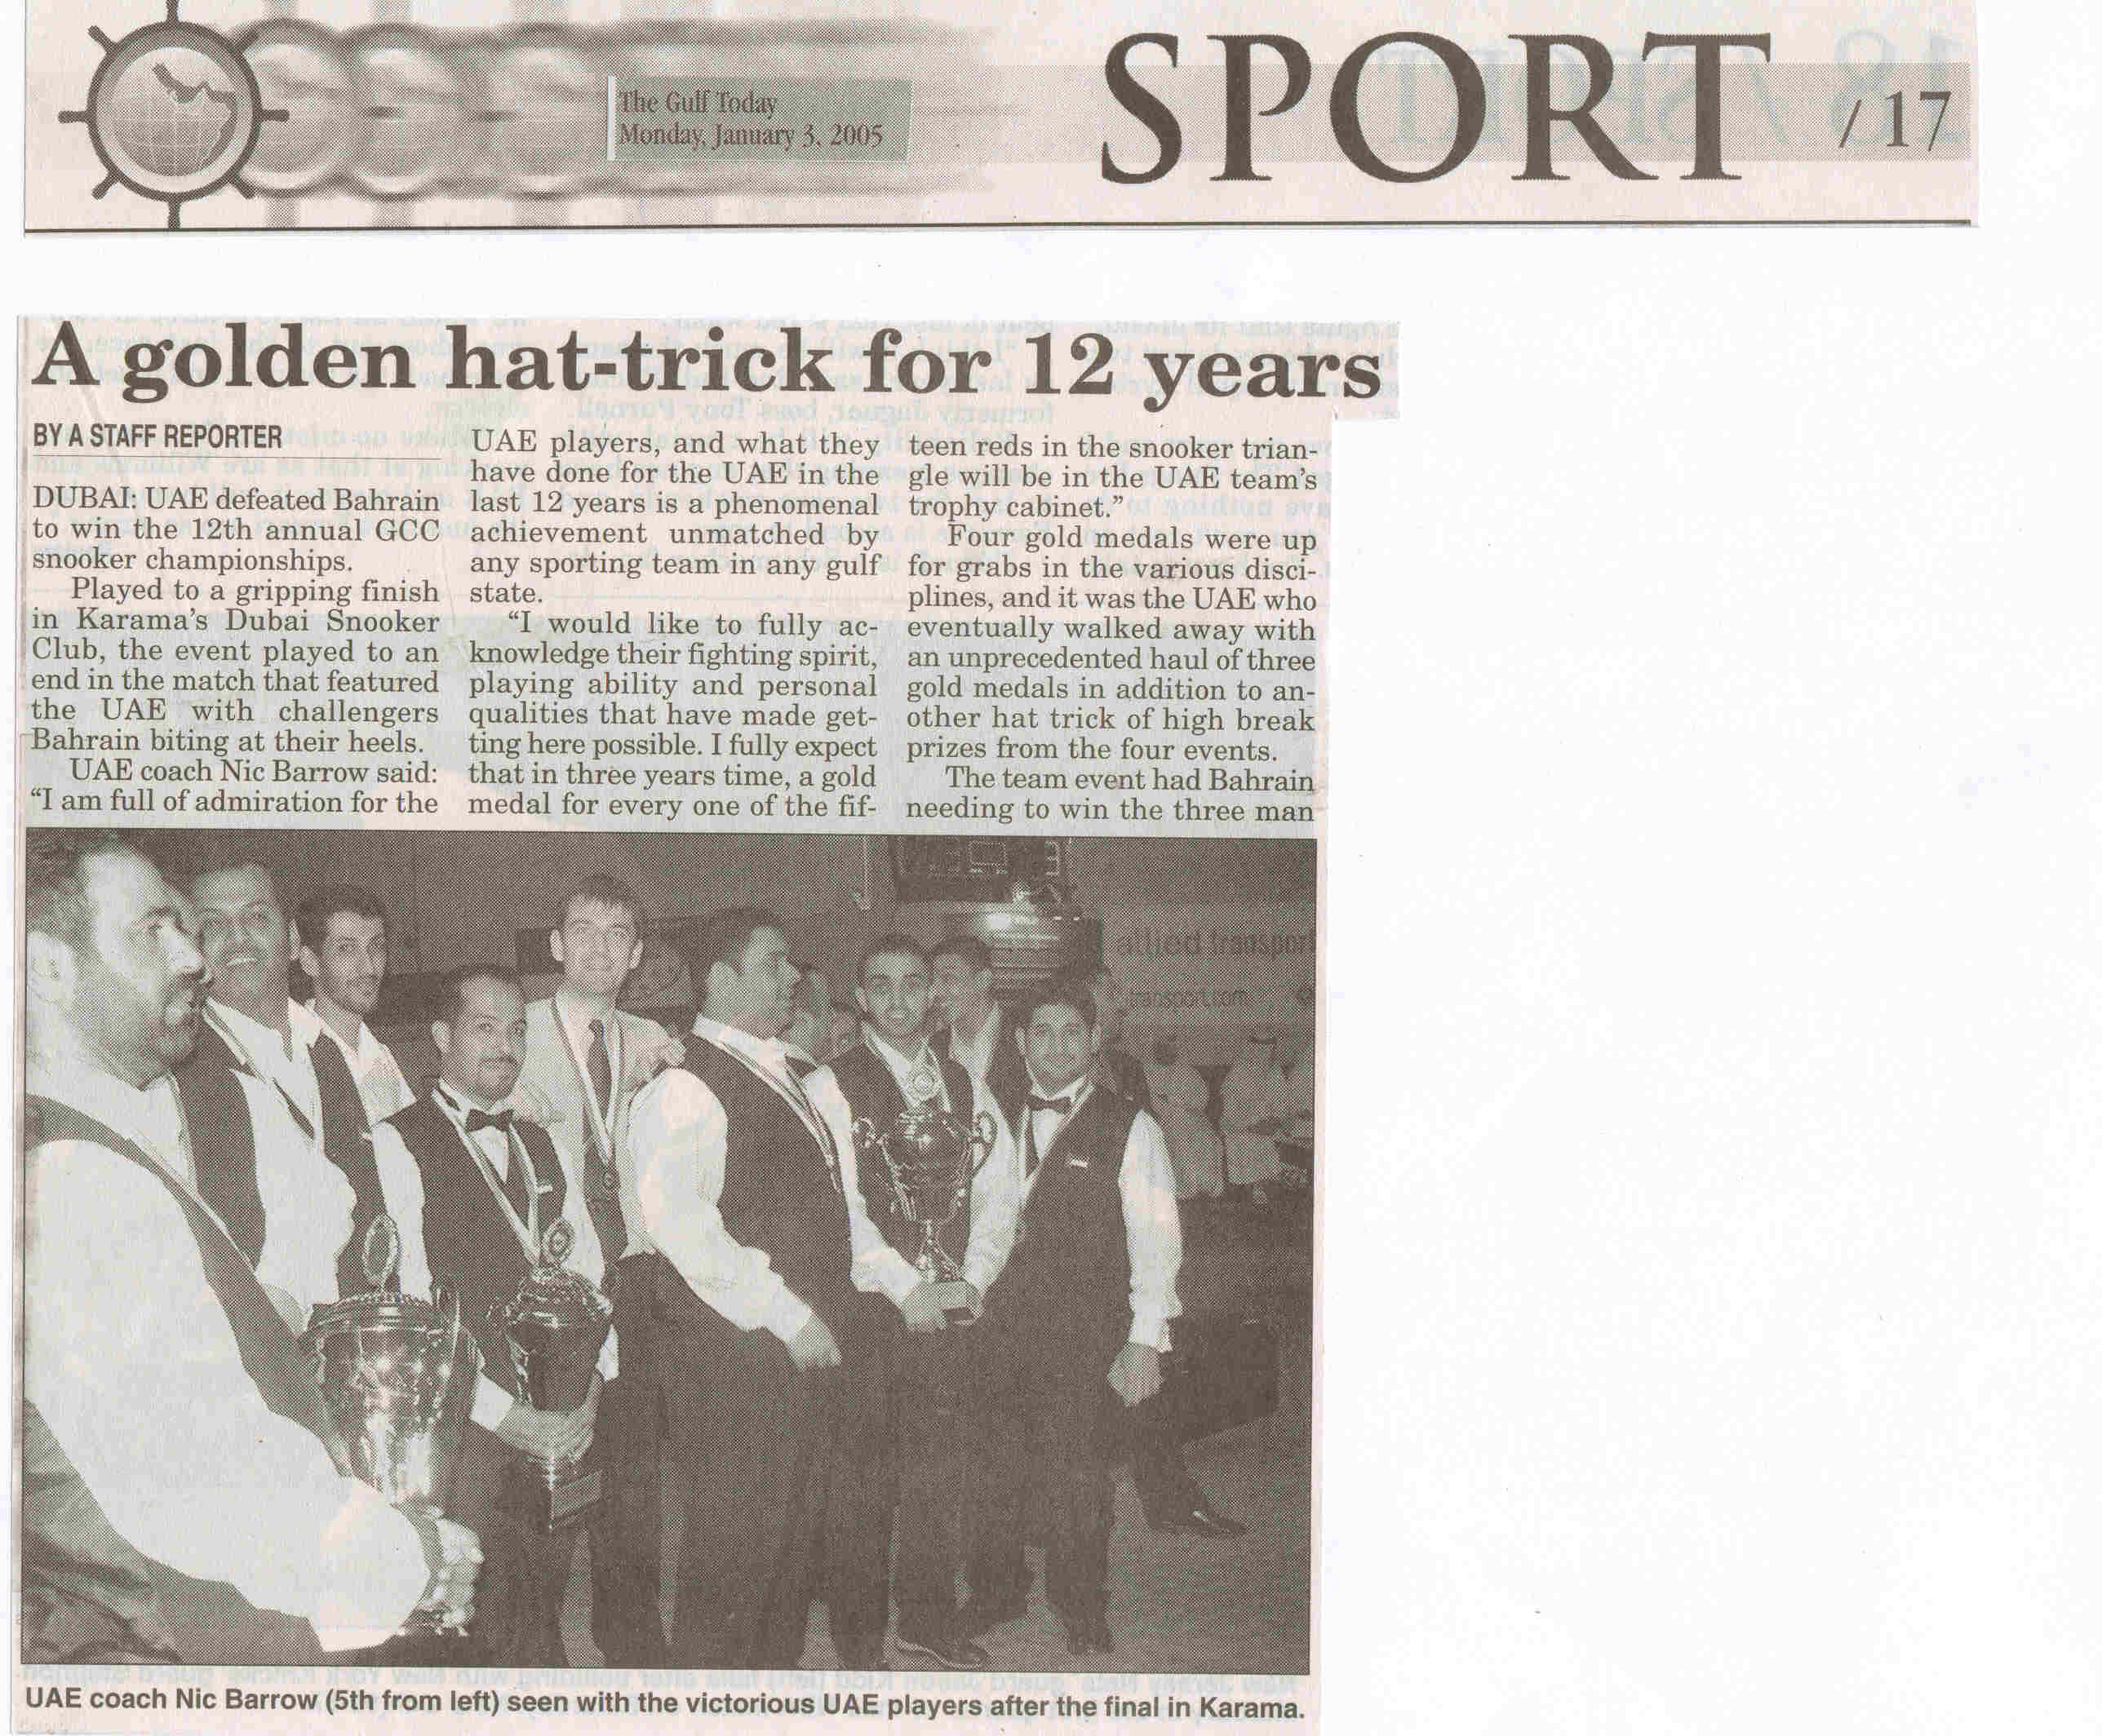 A golden hat - trick for 12 years